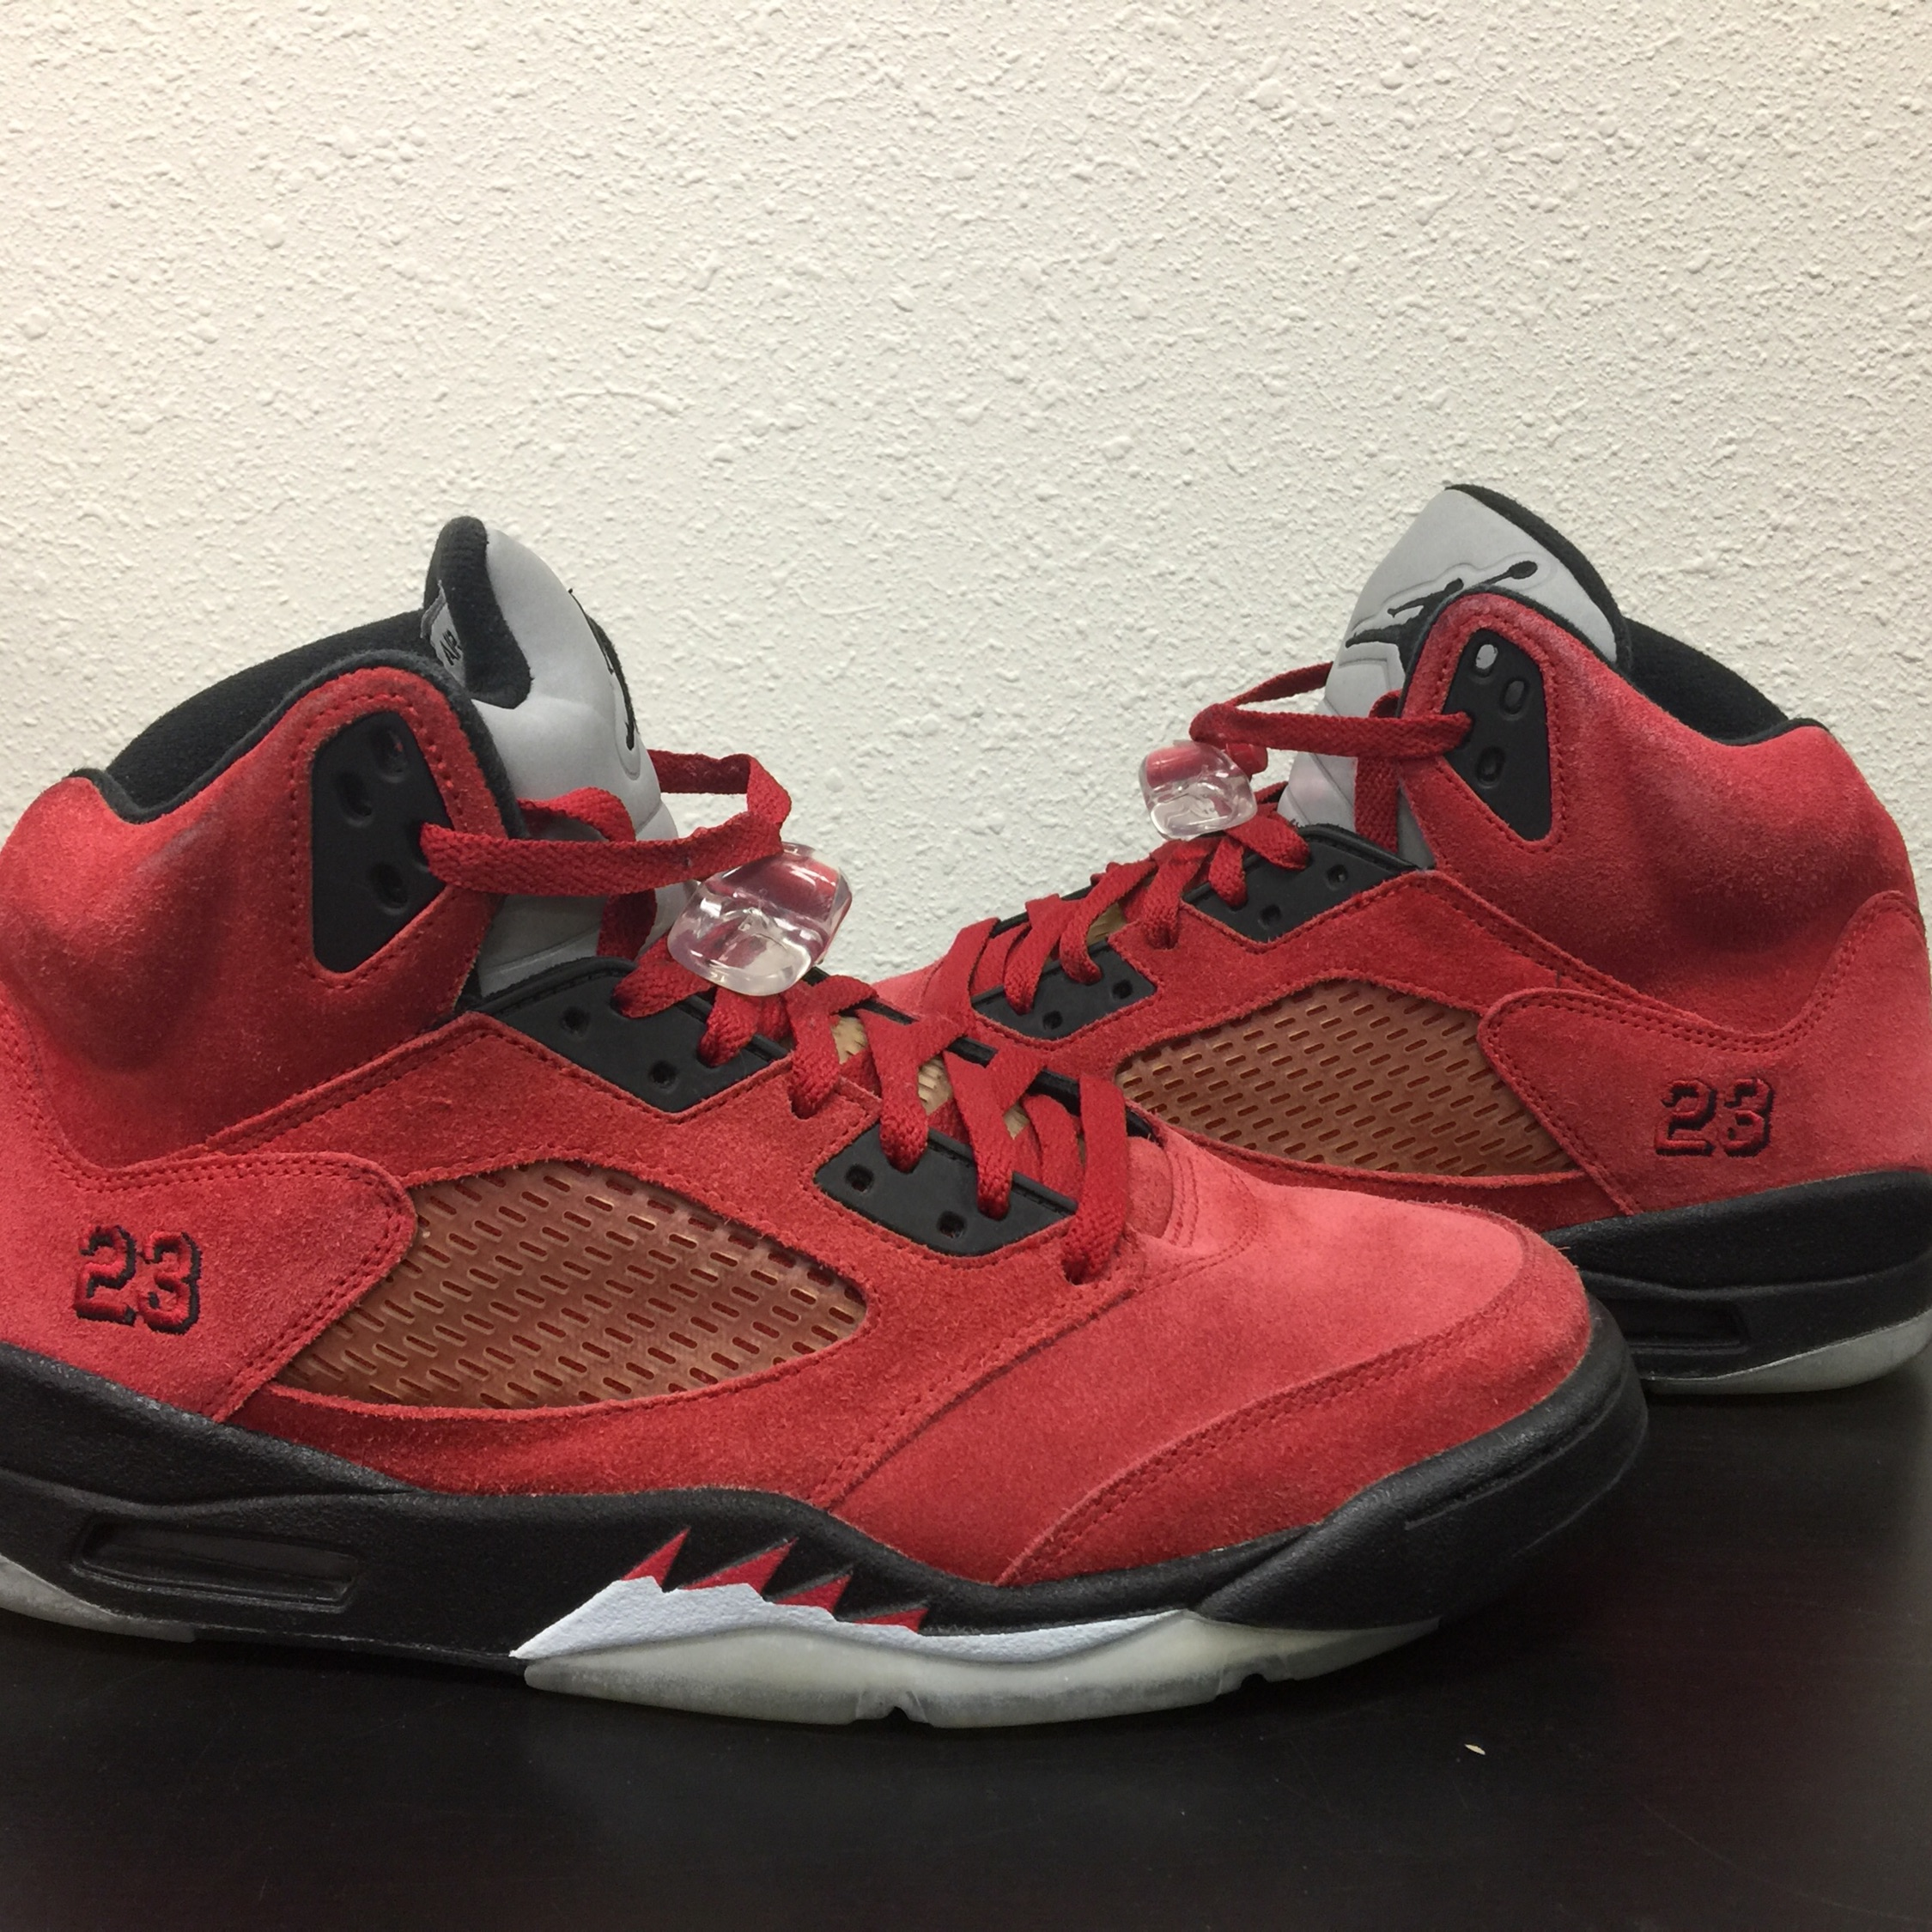 pretty nice 8711c 02211 Air Jordan 5 Raging Bull Toro